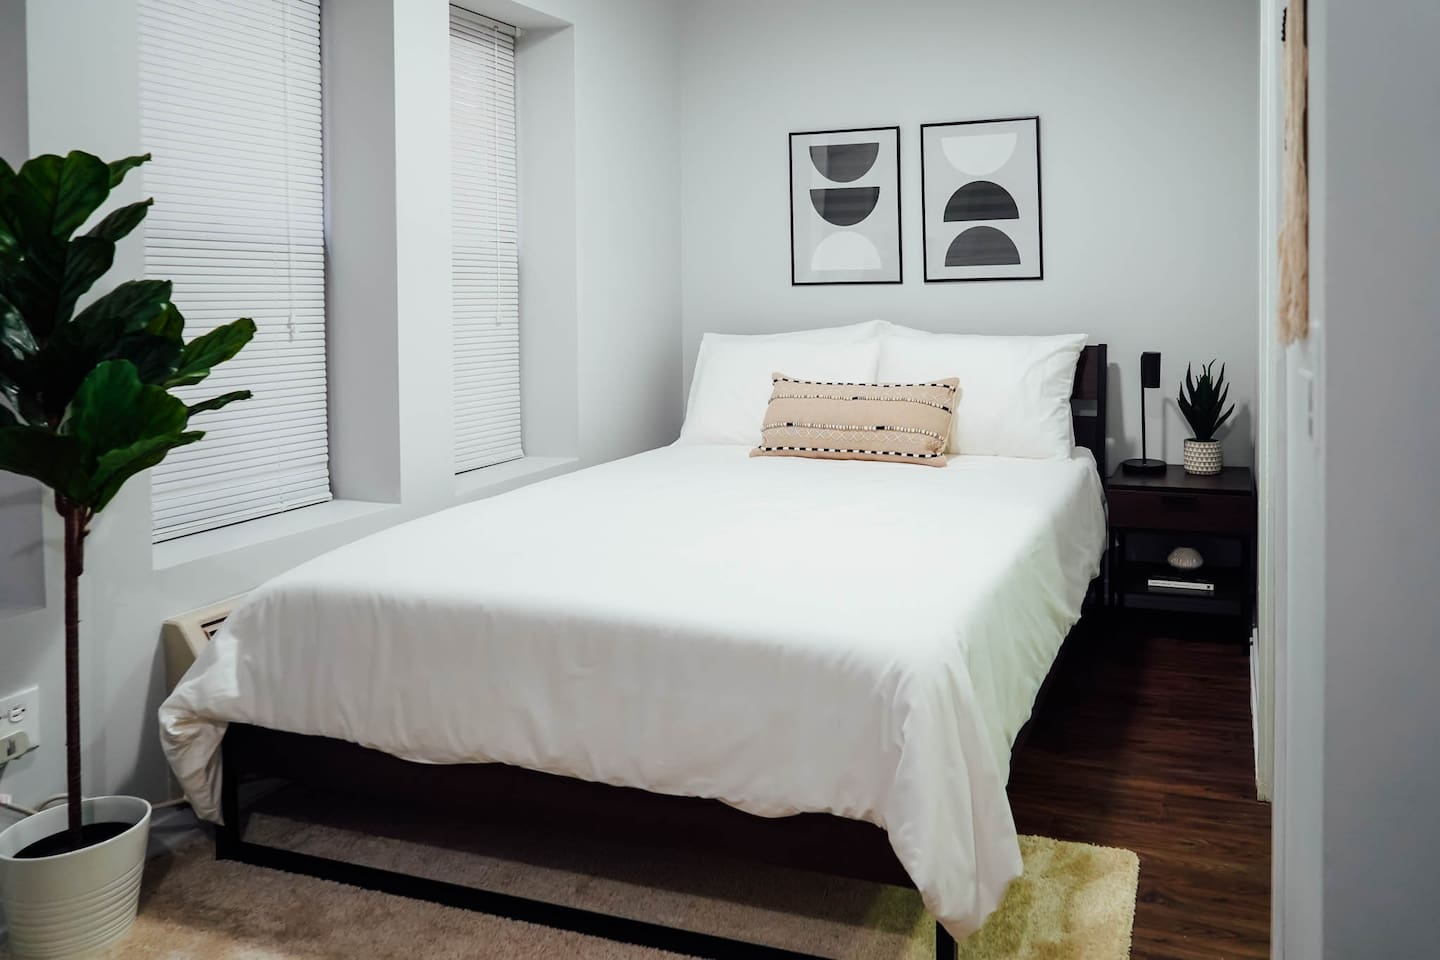 Queen sized bed with premium mattress, pillows and clean sheets